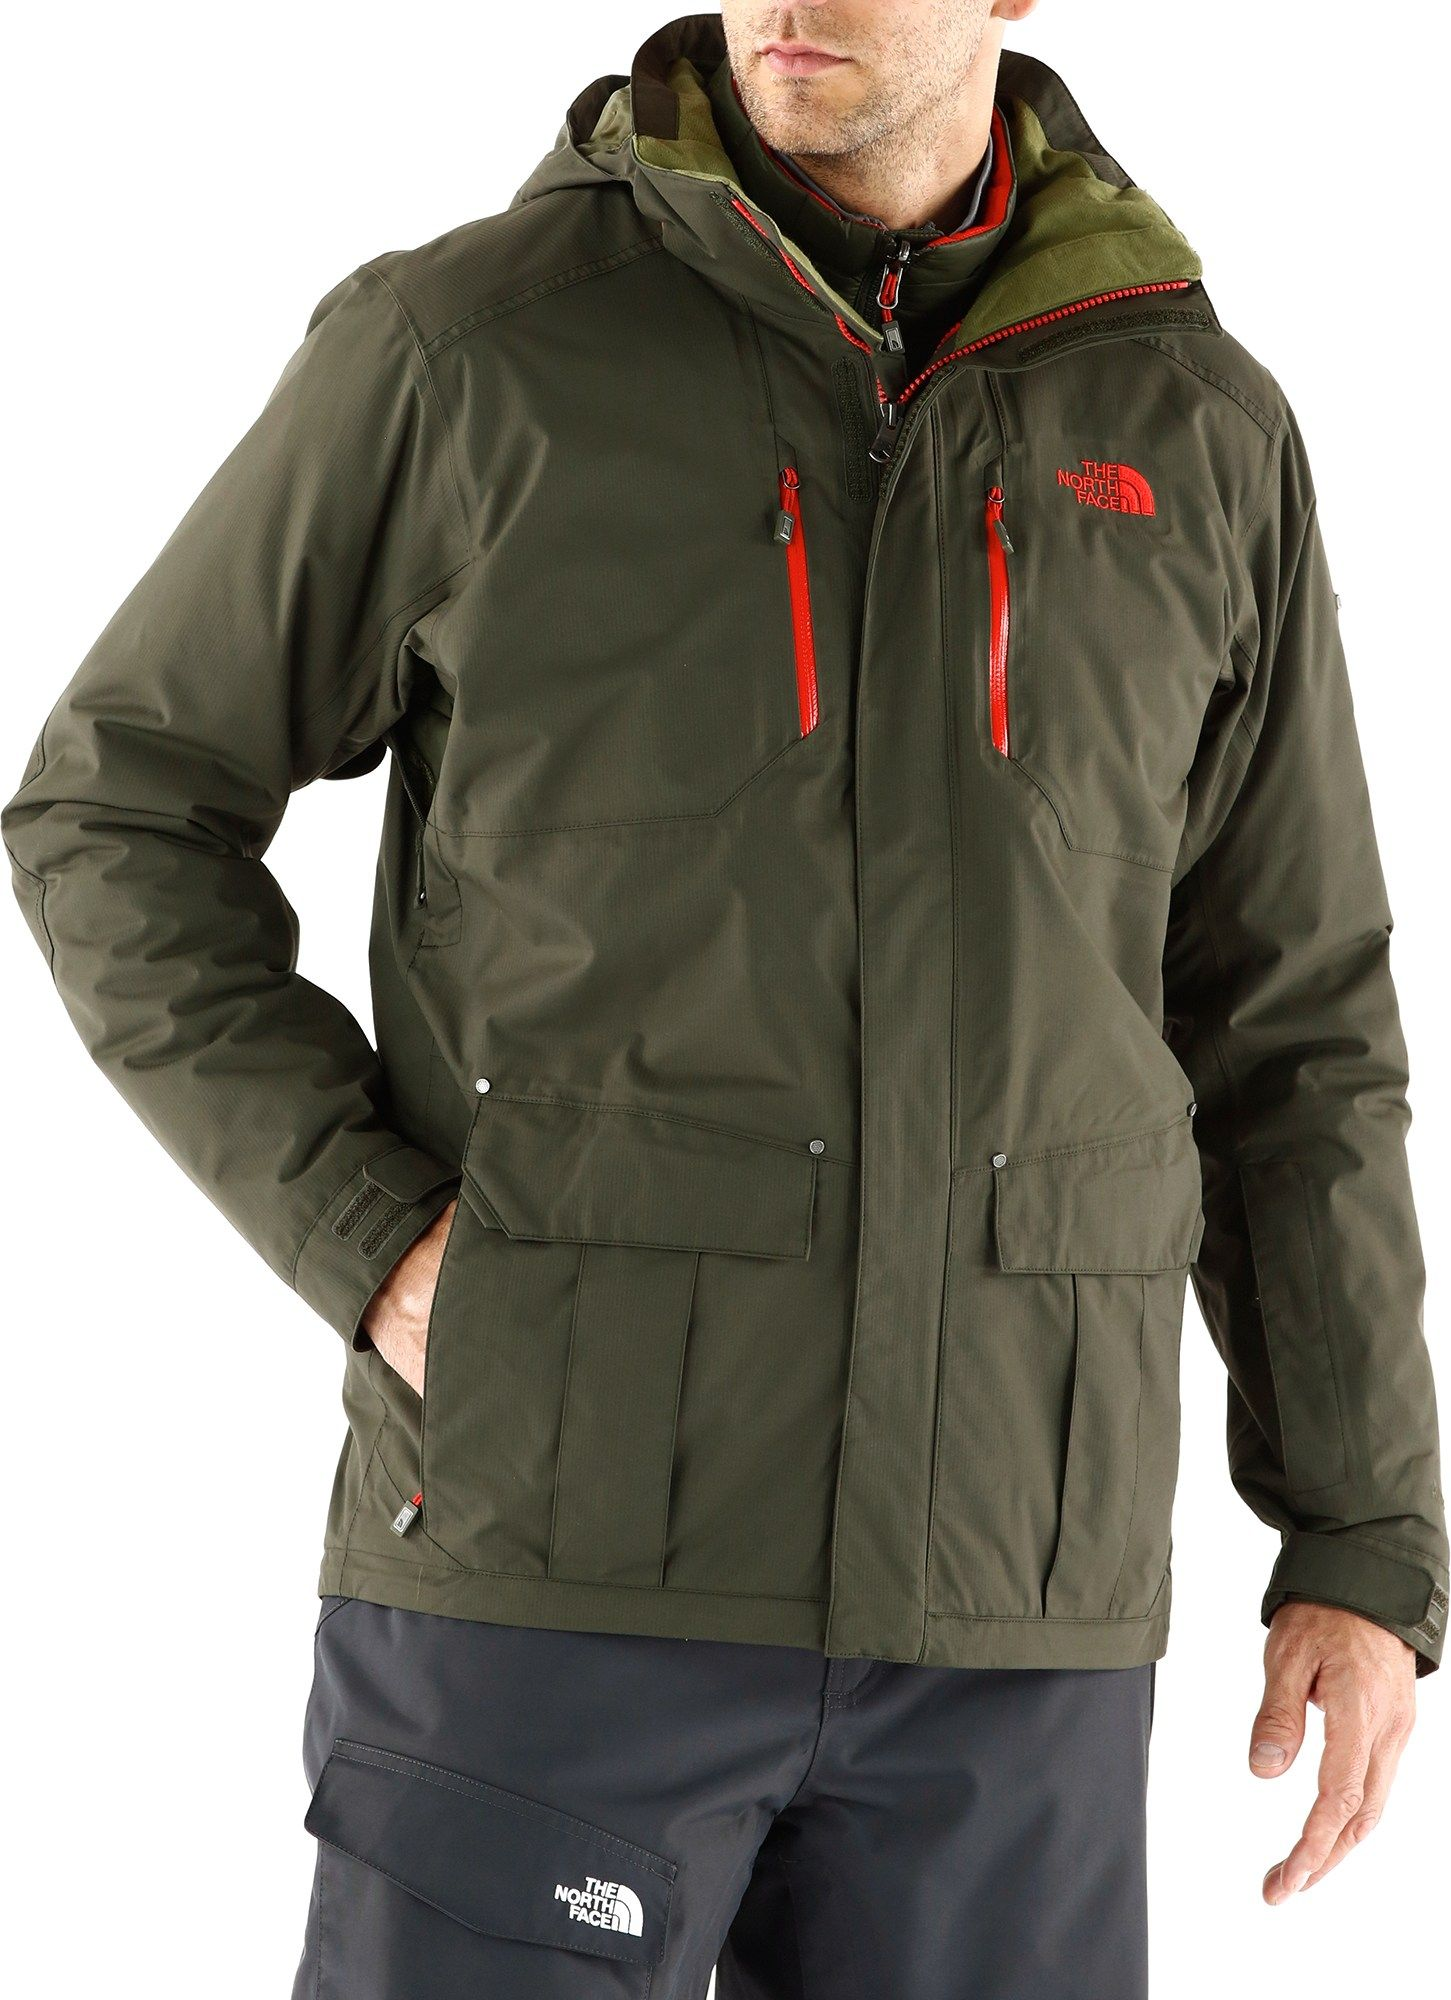 The North Face Male Thermoball Snow Triclimate 3-In-1 Jacket - Men s ... 022c10d13